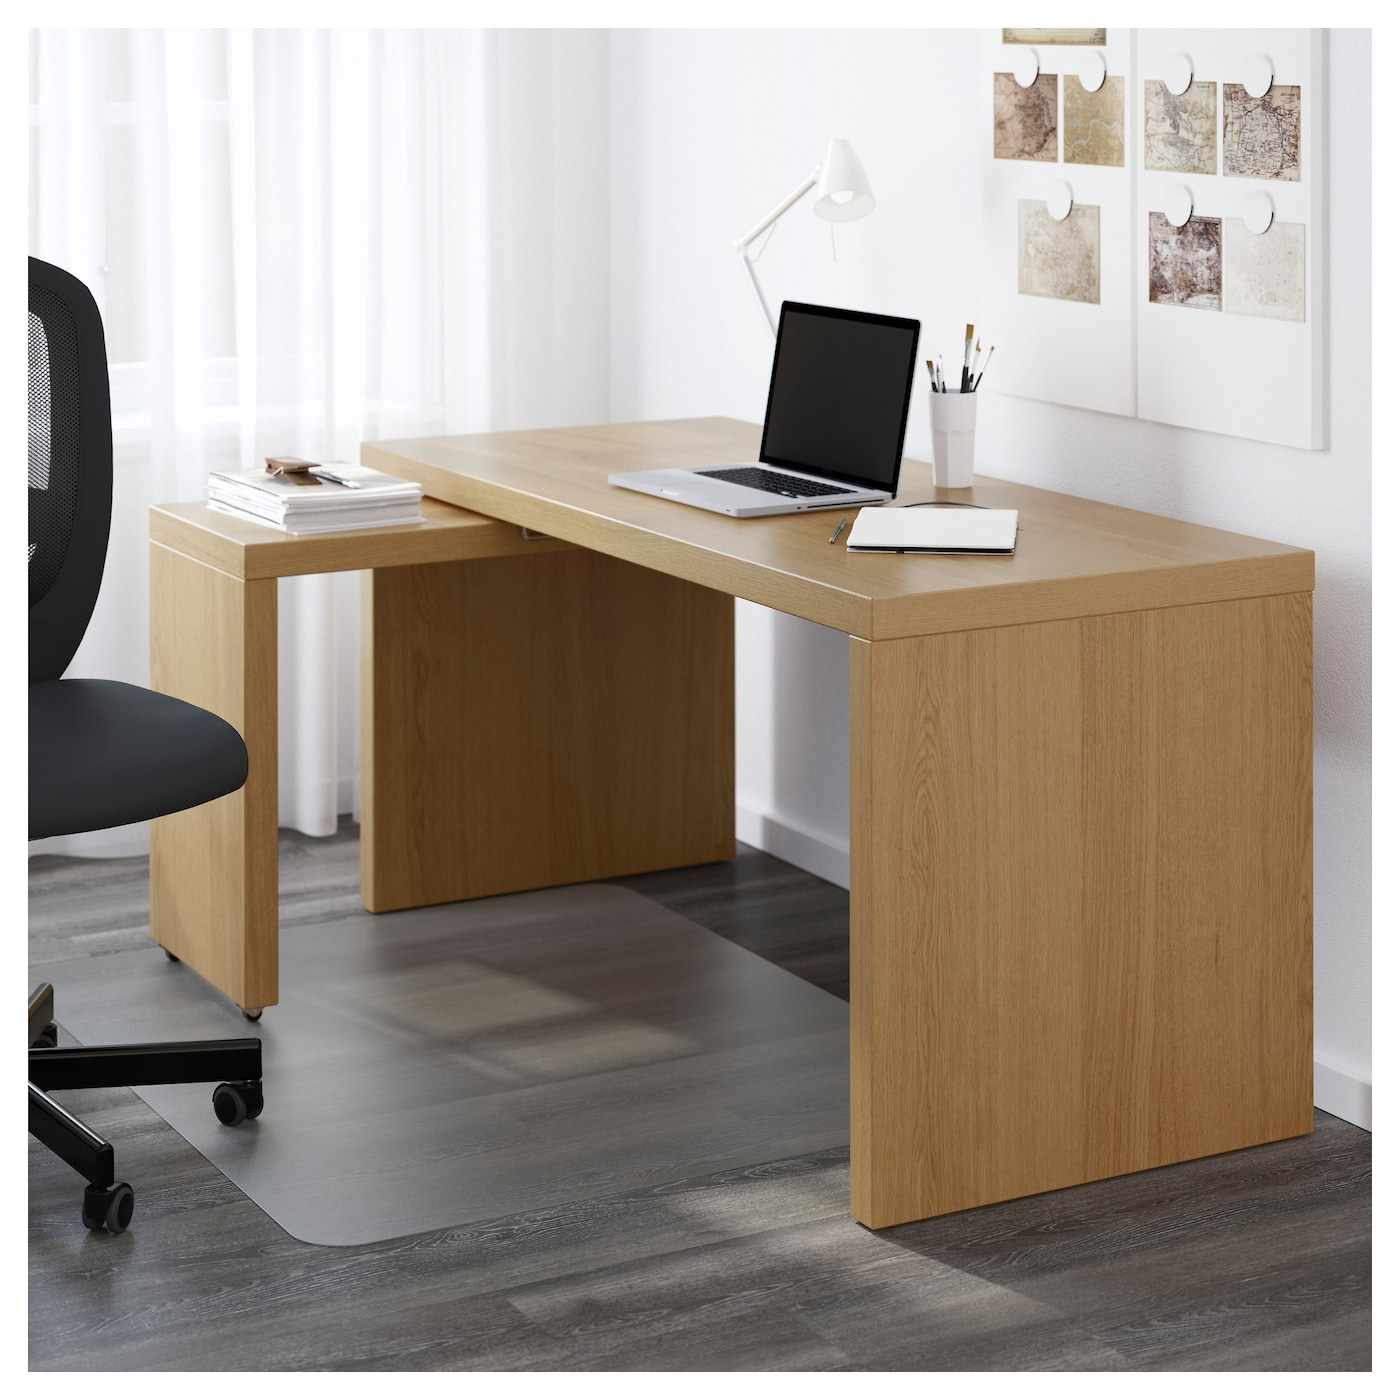 malm desk with pull out panel oak veneer 151 x 65 cm ikea. Black Bedroom Furniture Sets. Home Design Ideas